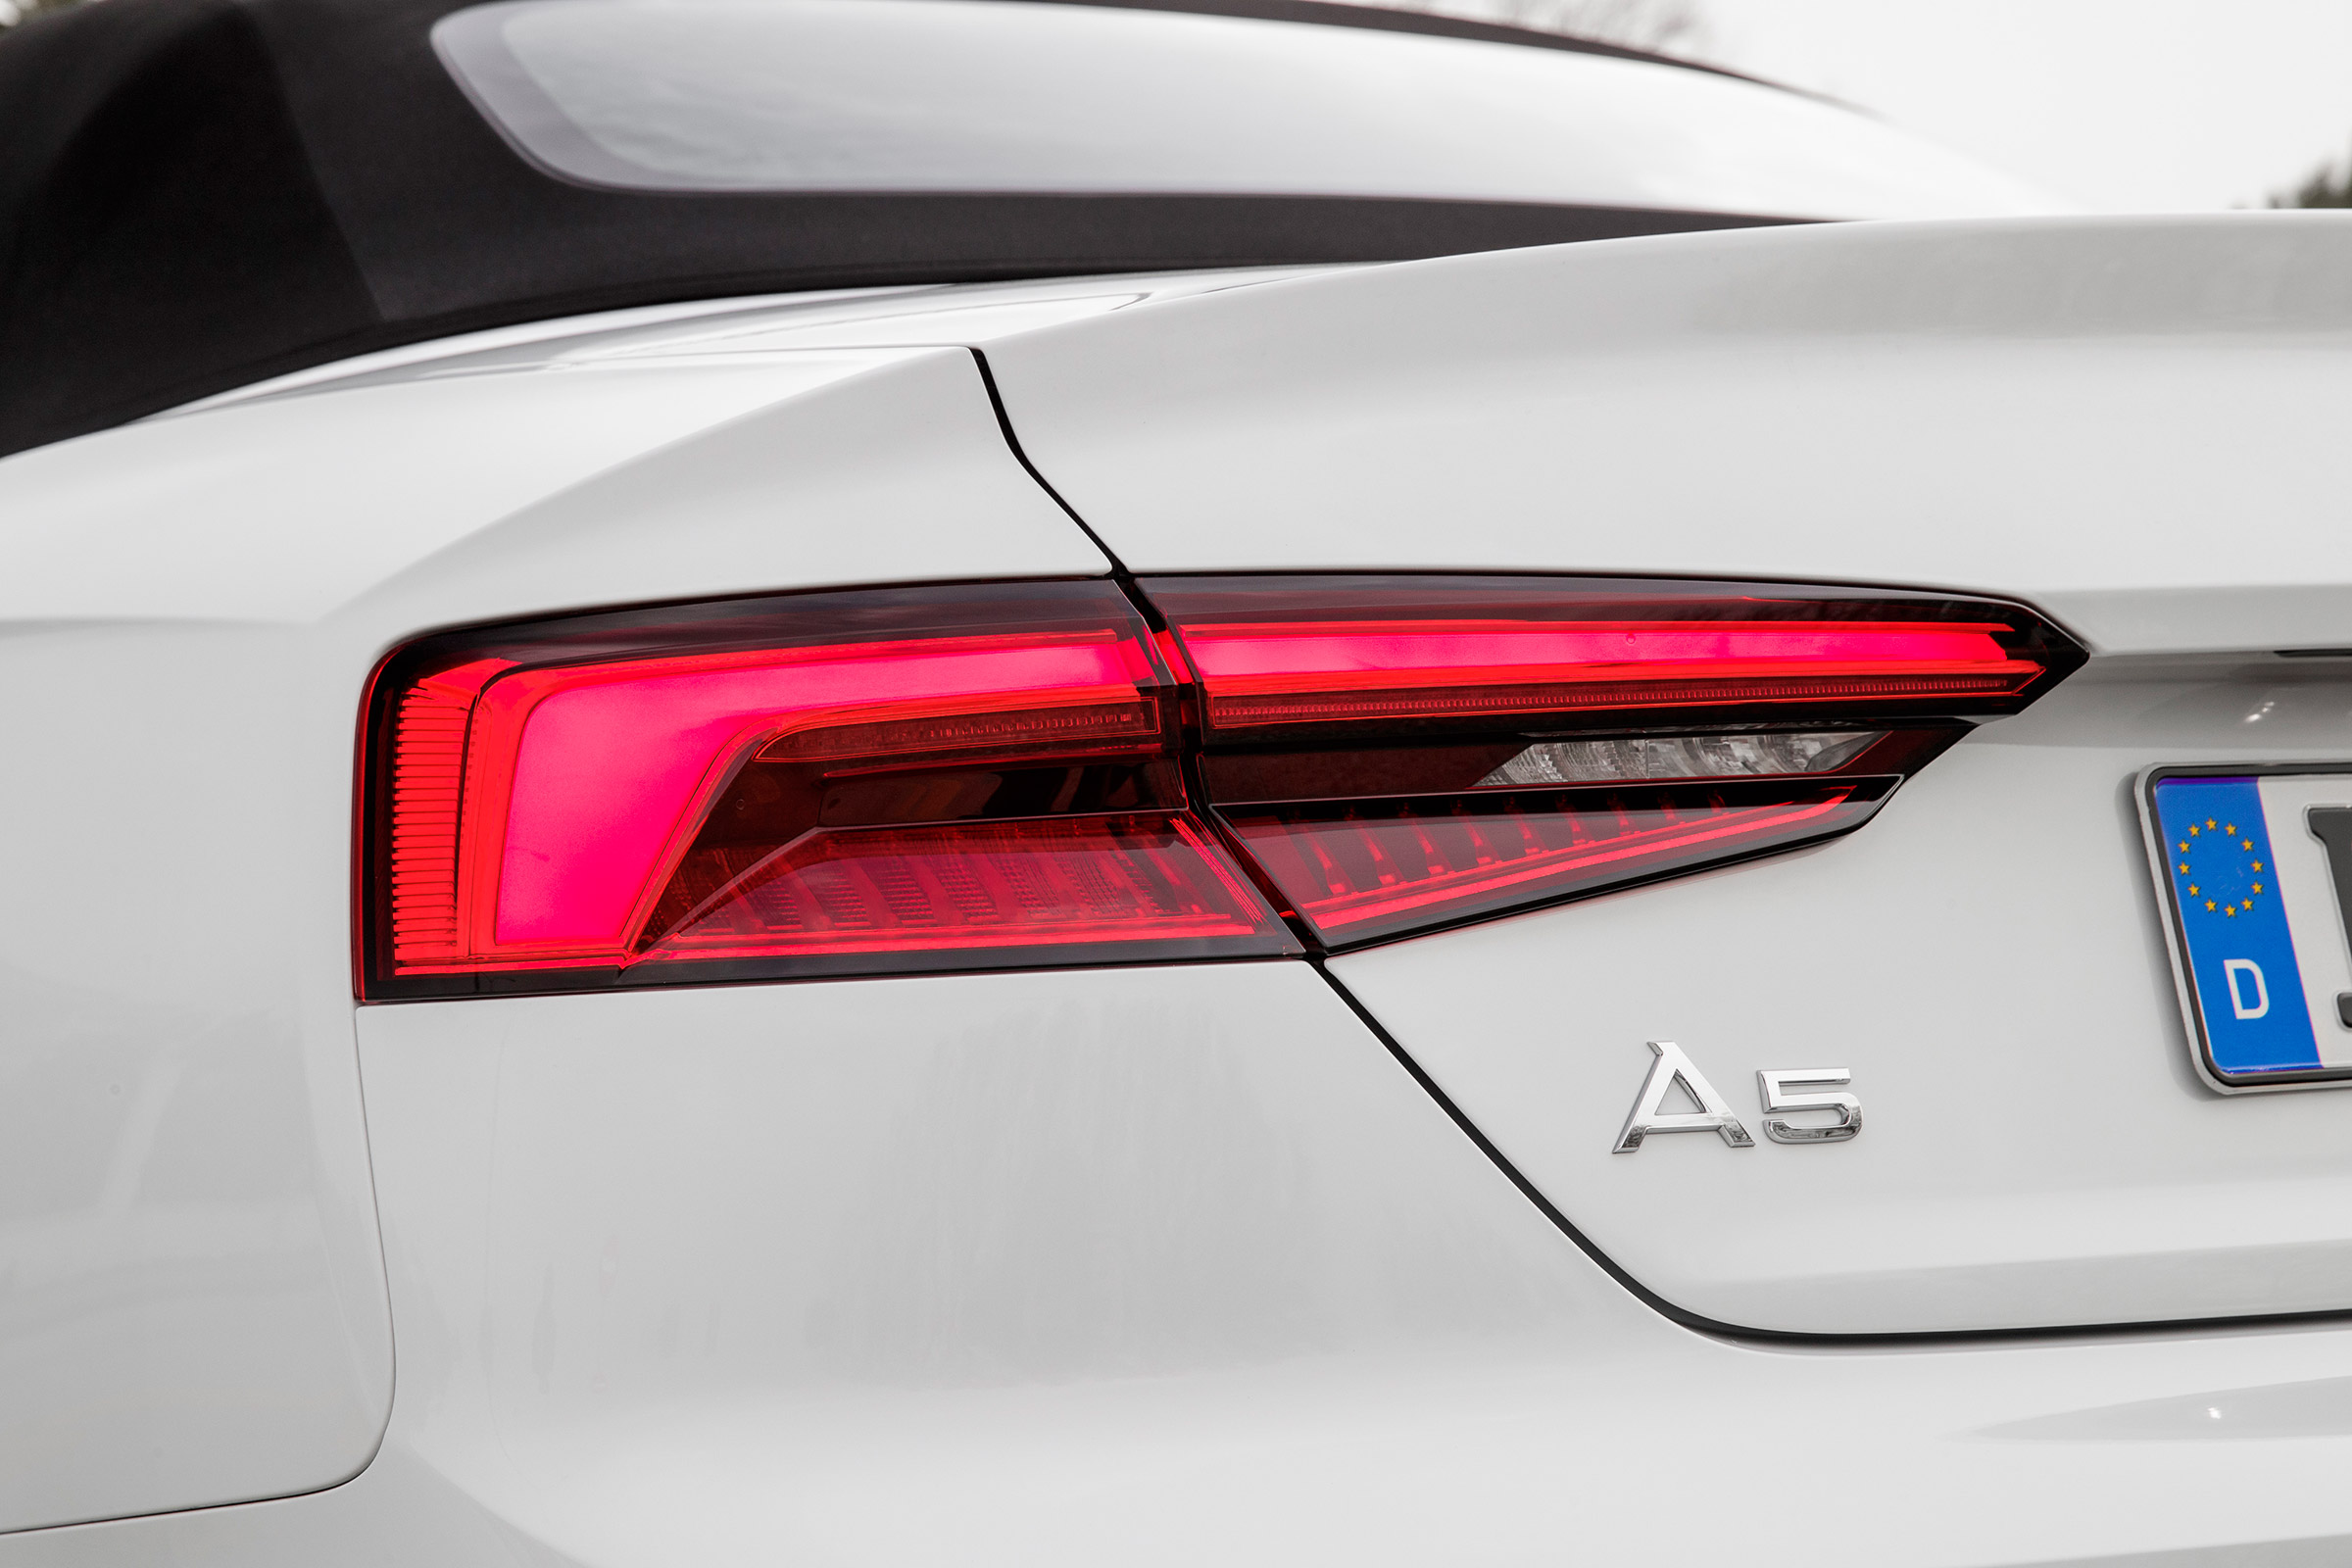 2017 Audi A5 Cabriolet Exterior View Taillight (Photo 5 of 18)